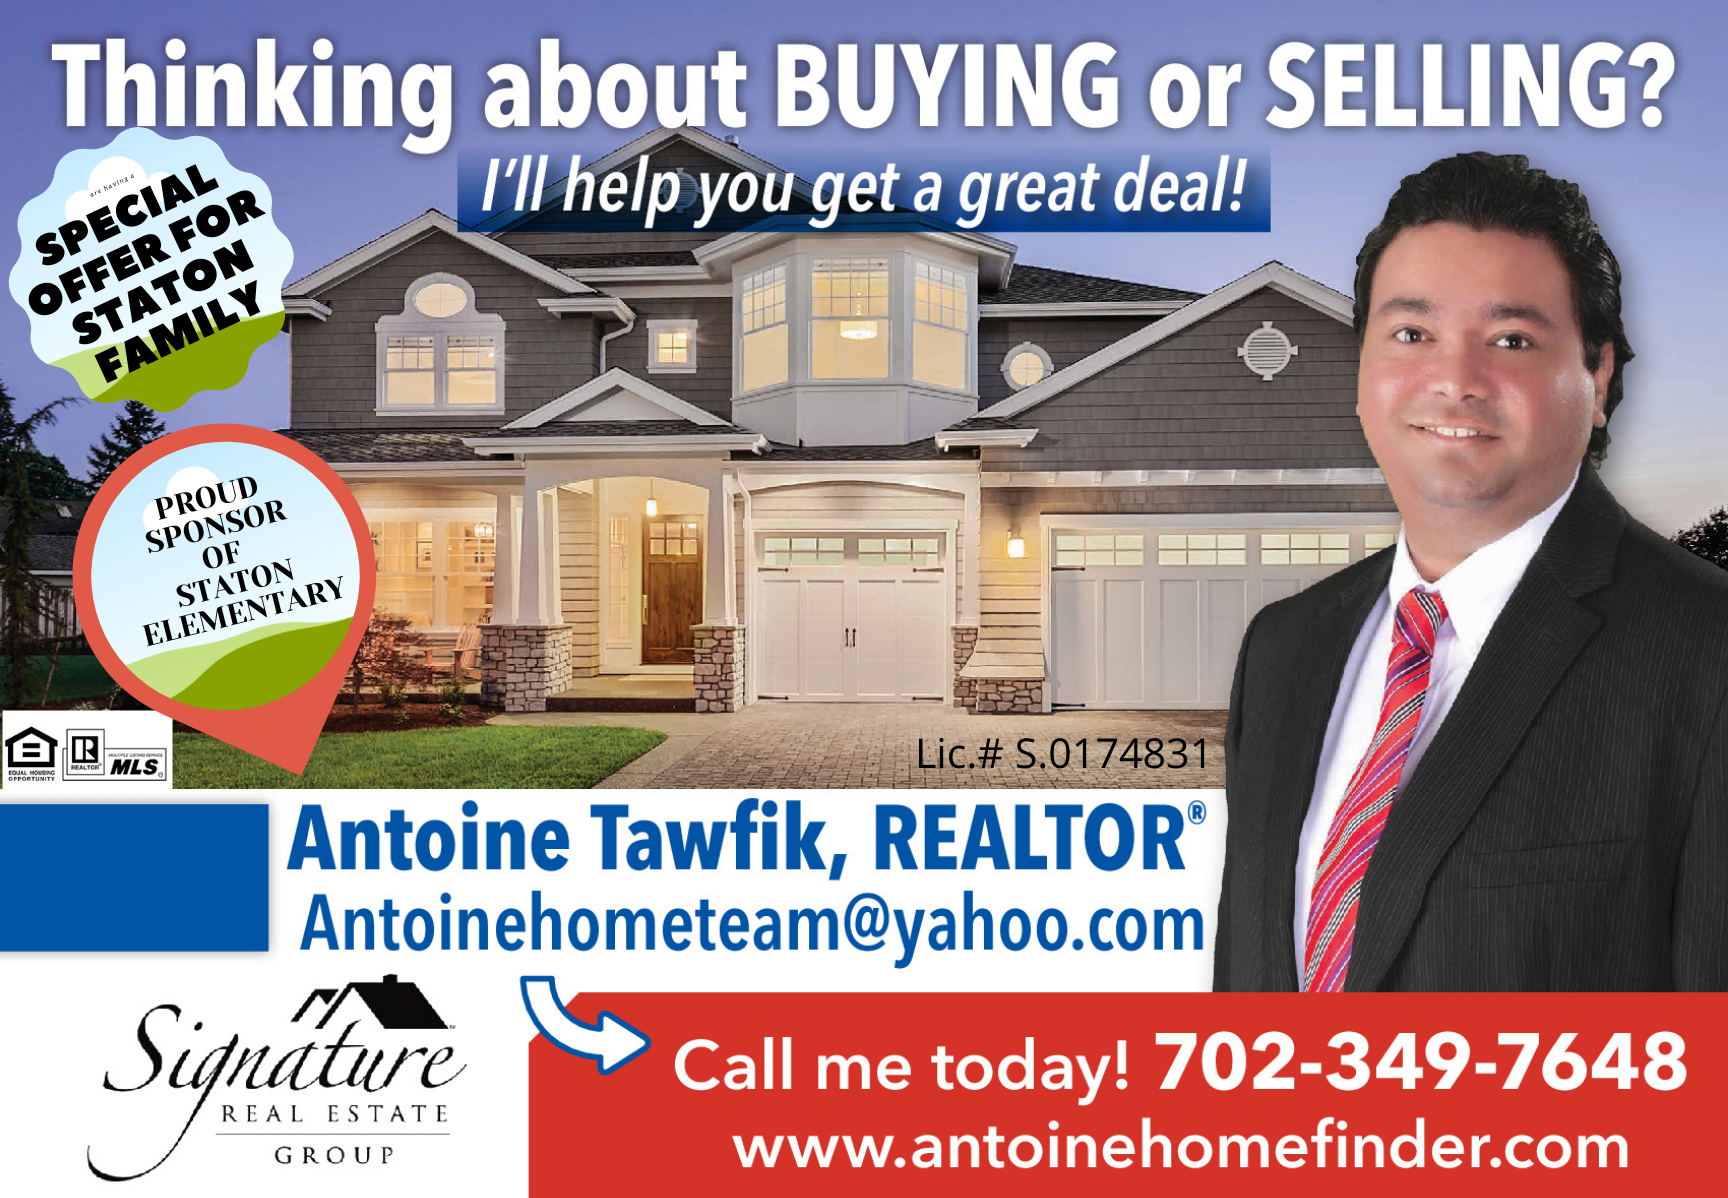 Antoine Tawfik - Signature Real Estate Group